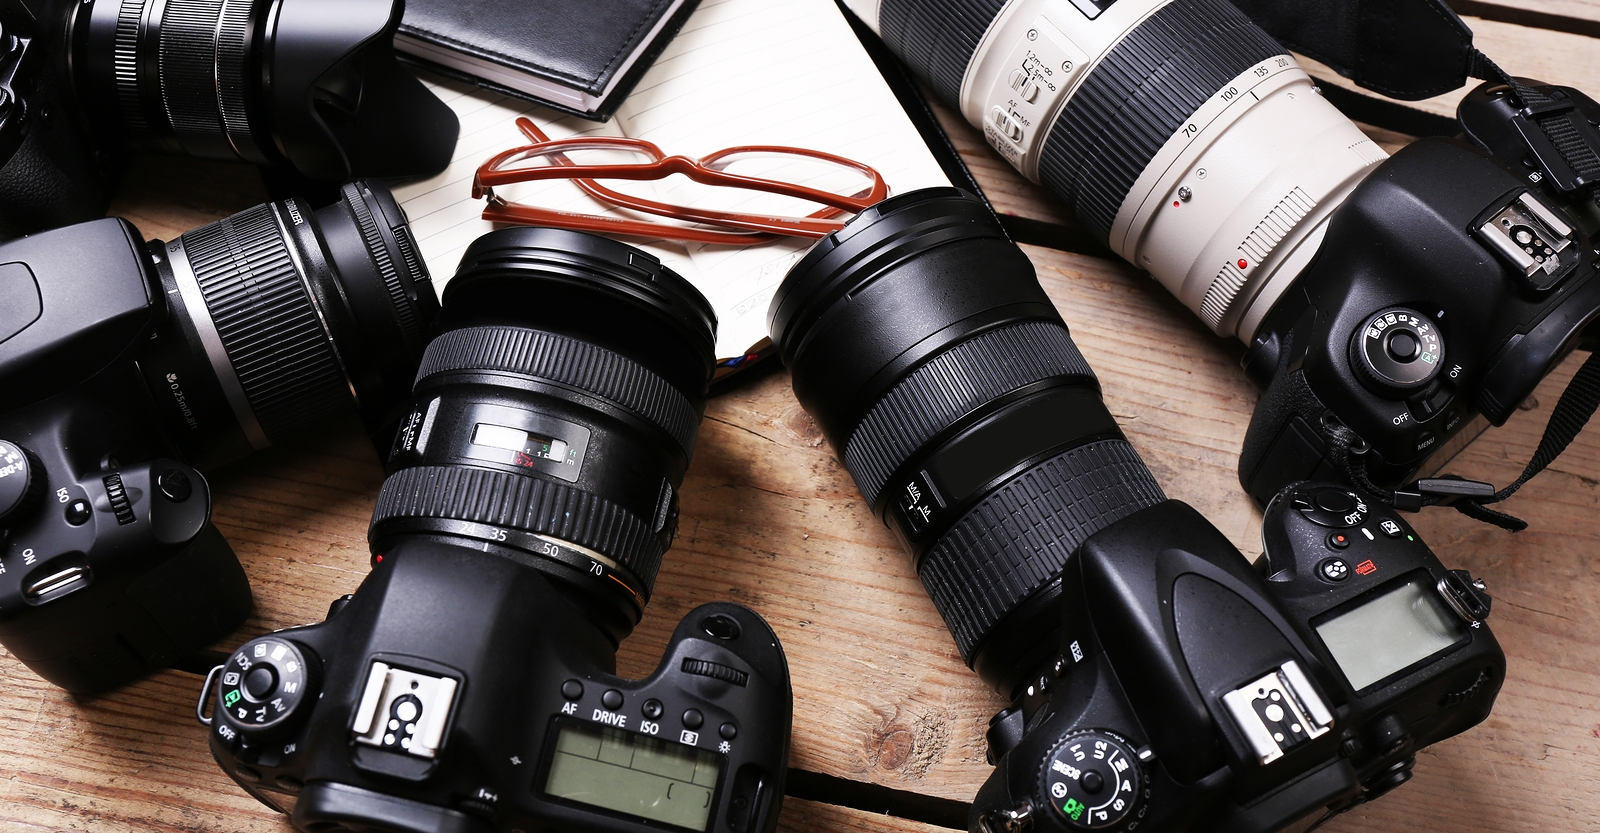 Do You Own One Of The Best Cameras In The World?